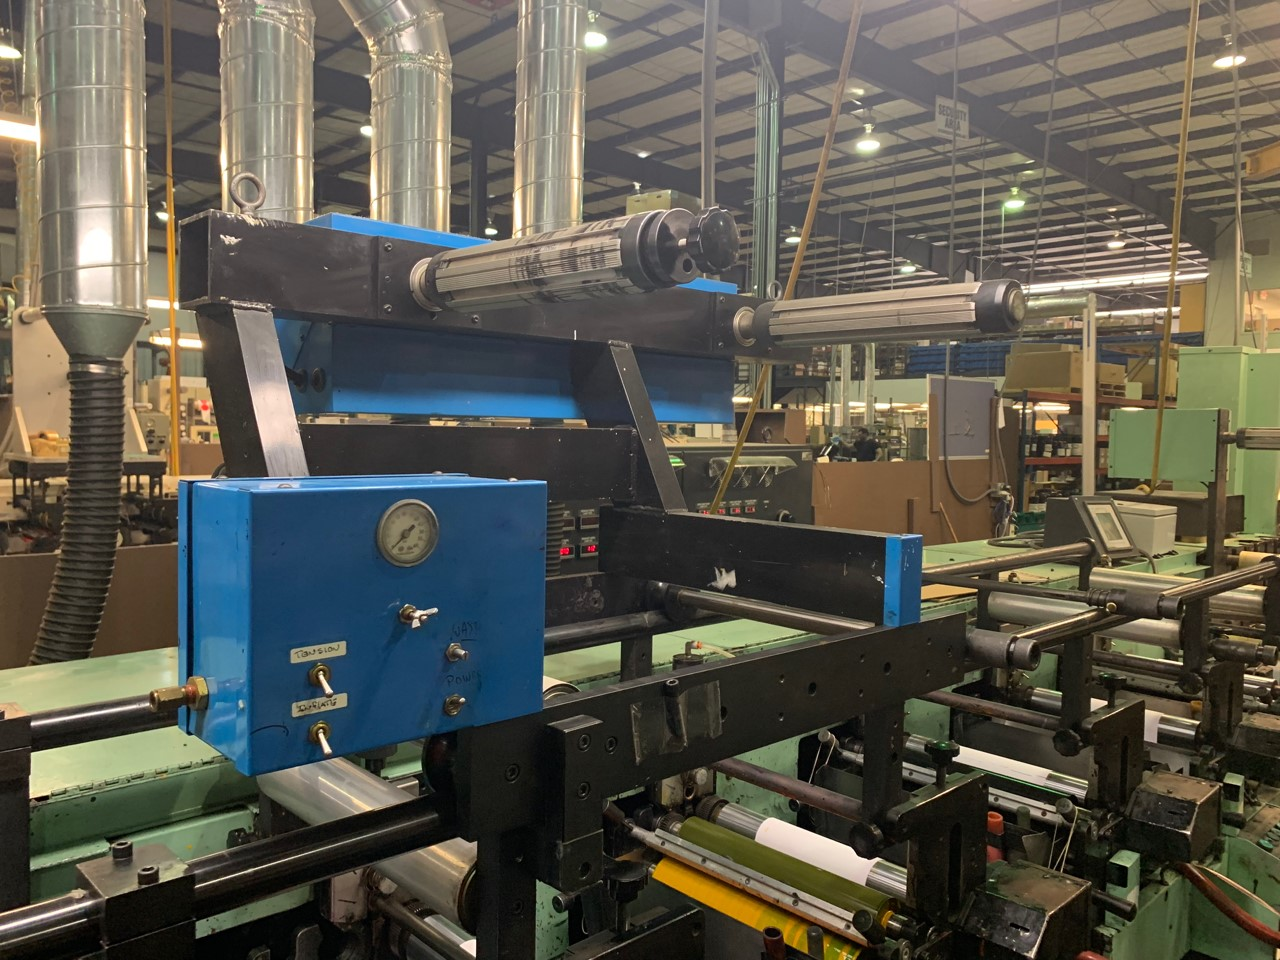 Rotopress 3513 - Used Flexo Printing Presses and Used Flexographic Equipment-5